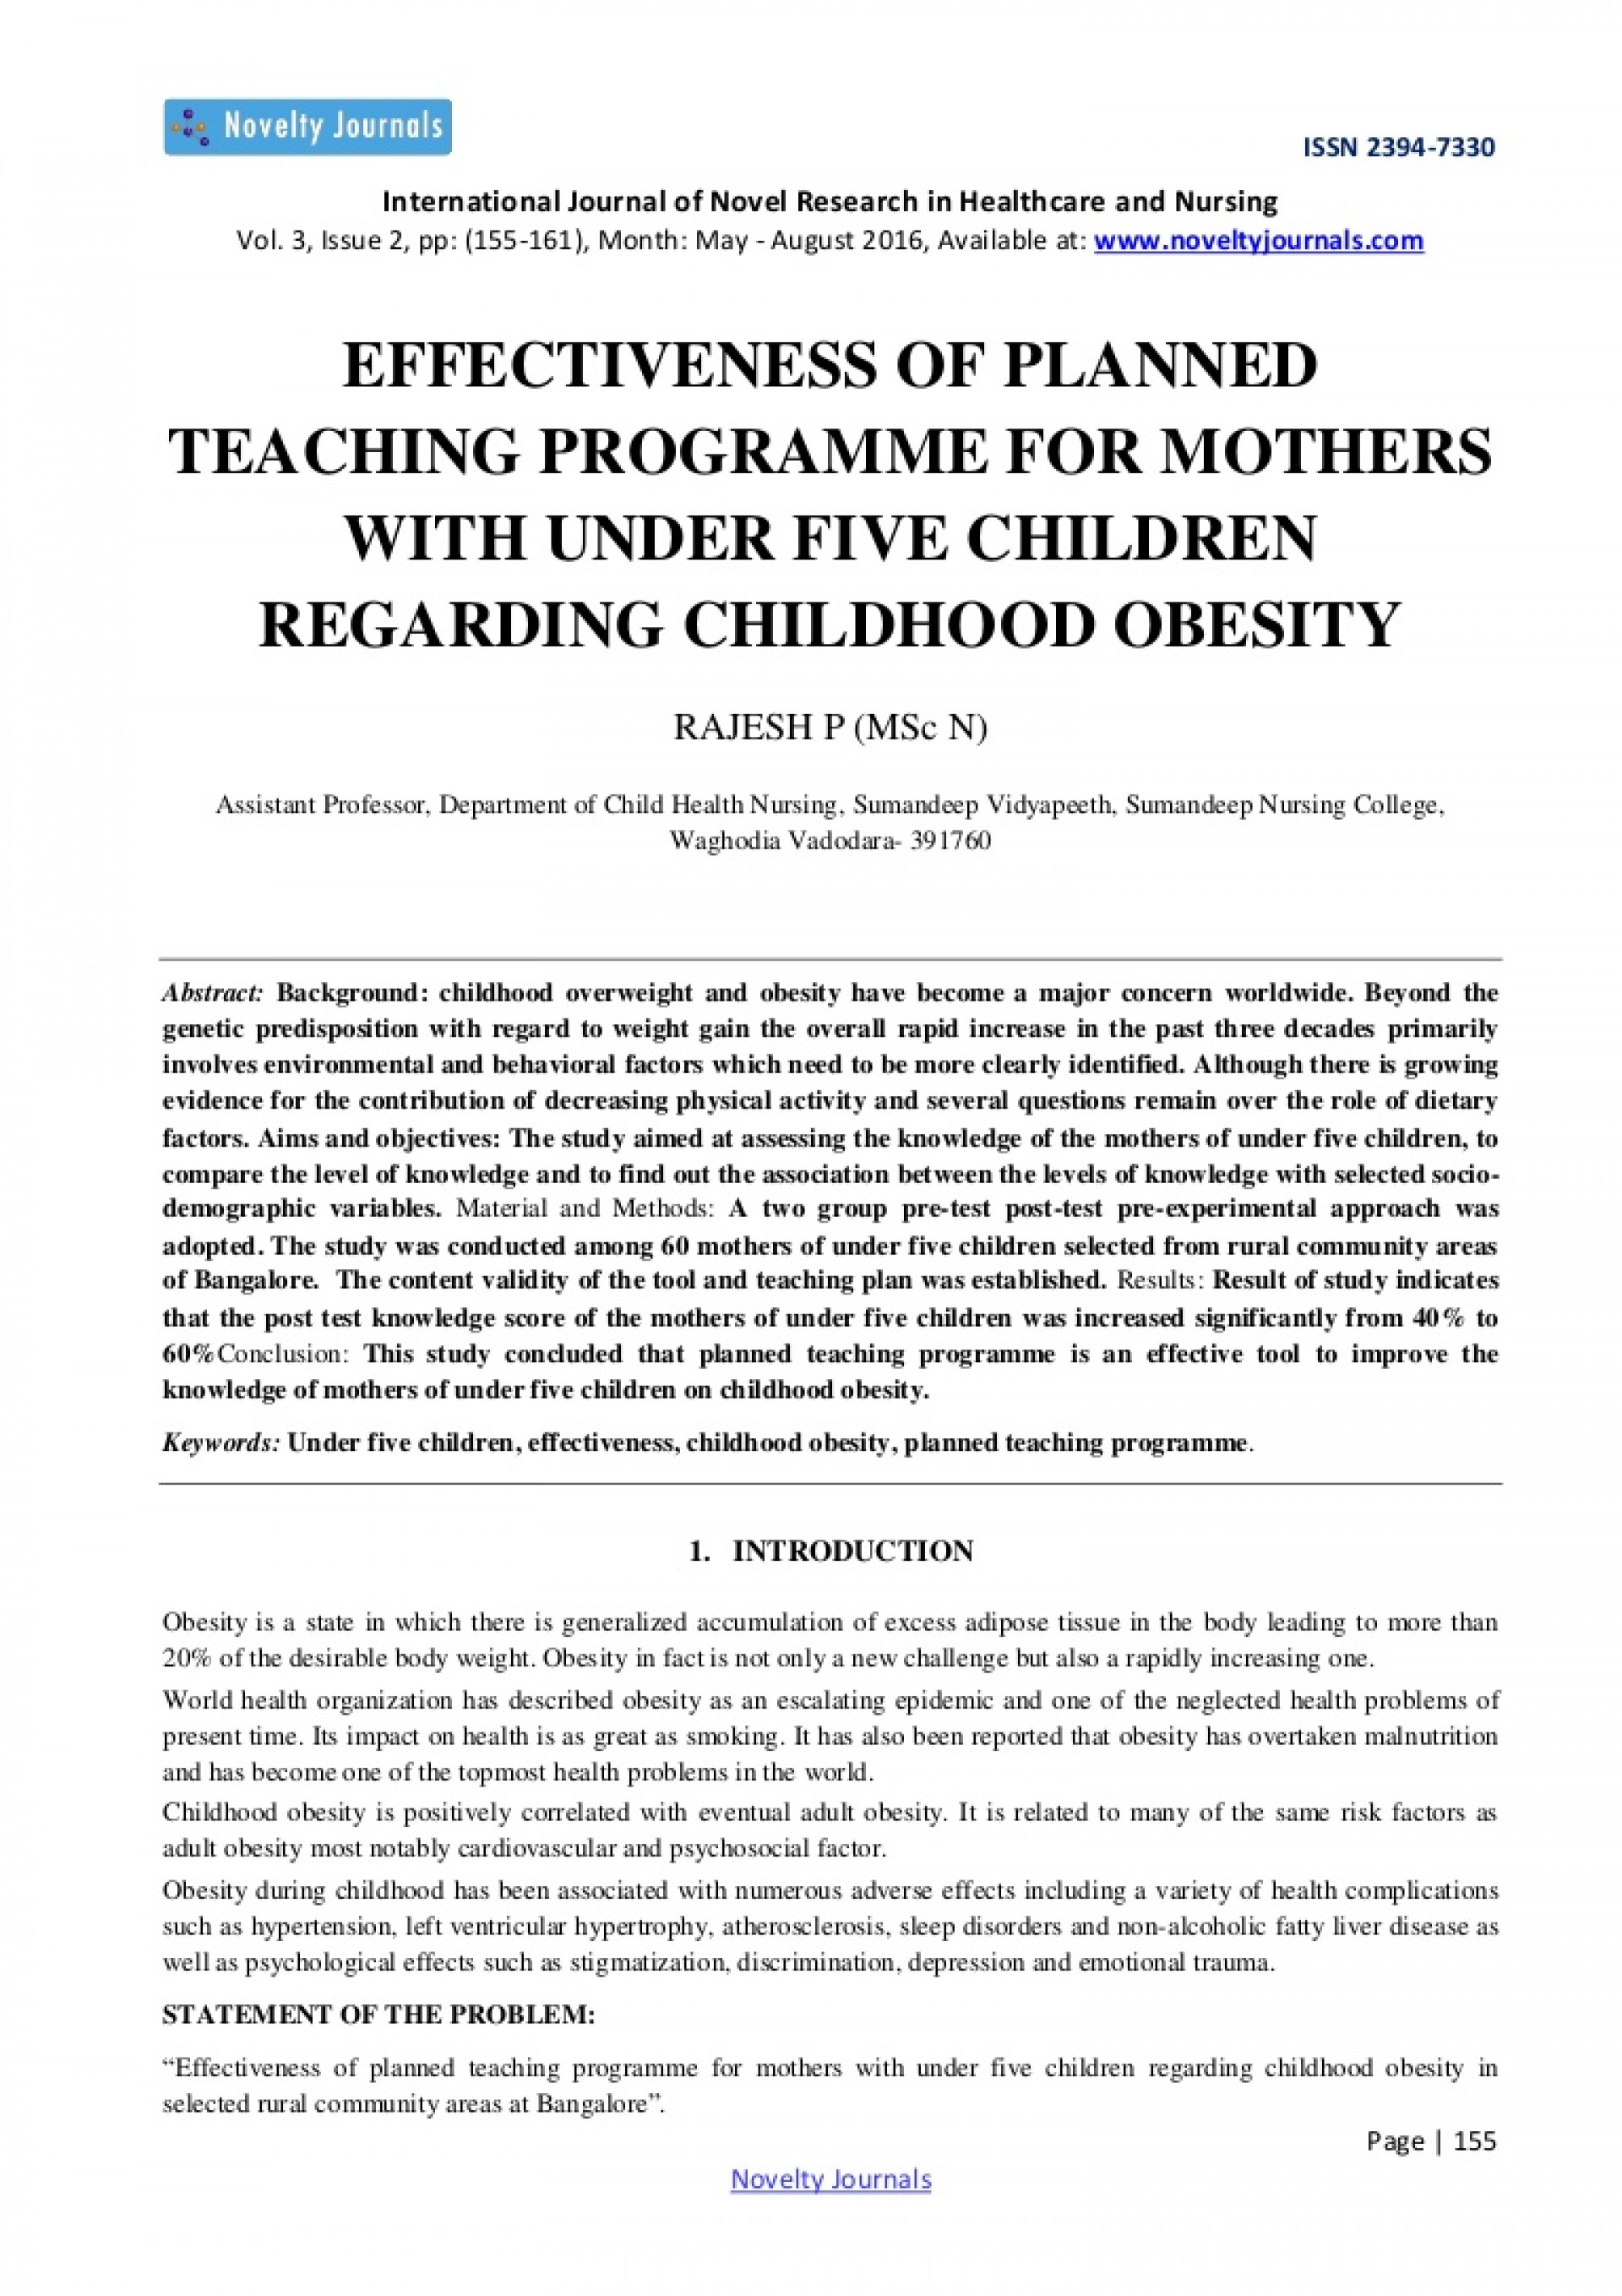 005 Nursing Research Articles On Childhood Obesity Paper Effectivenessofplanned Thumbnail Stirring 1920